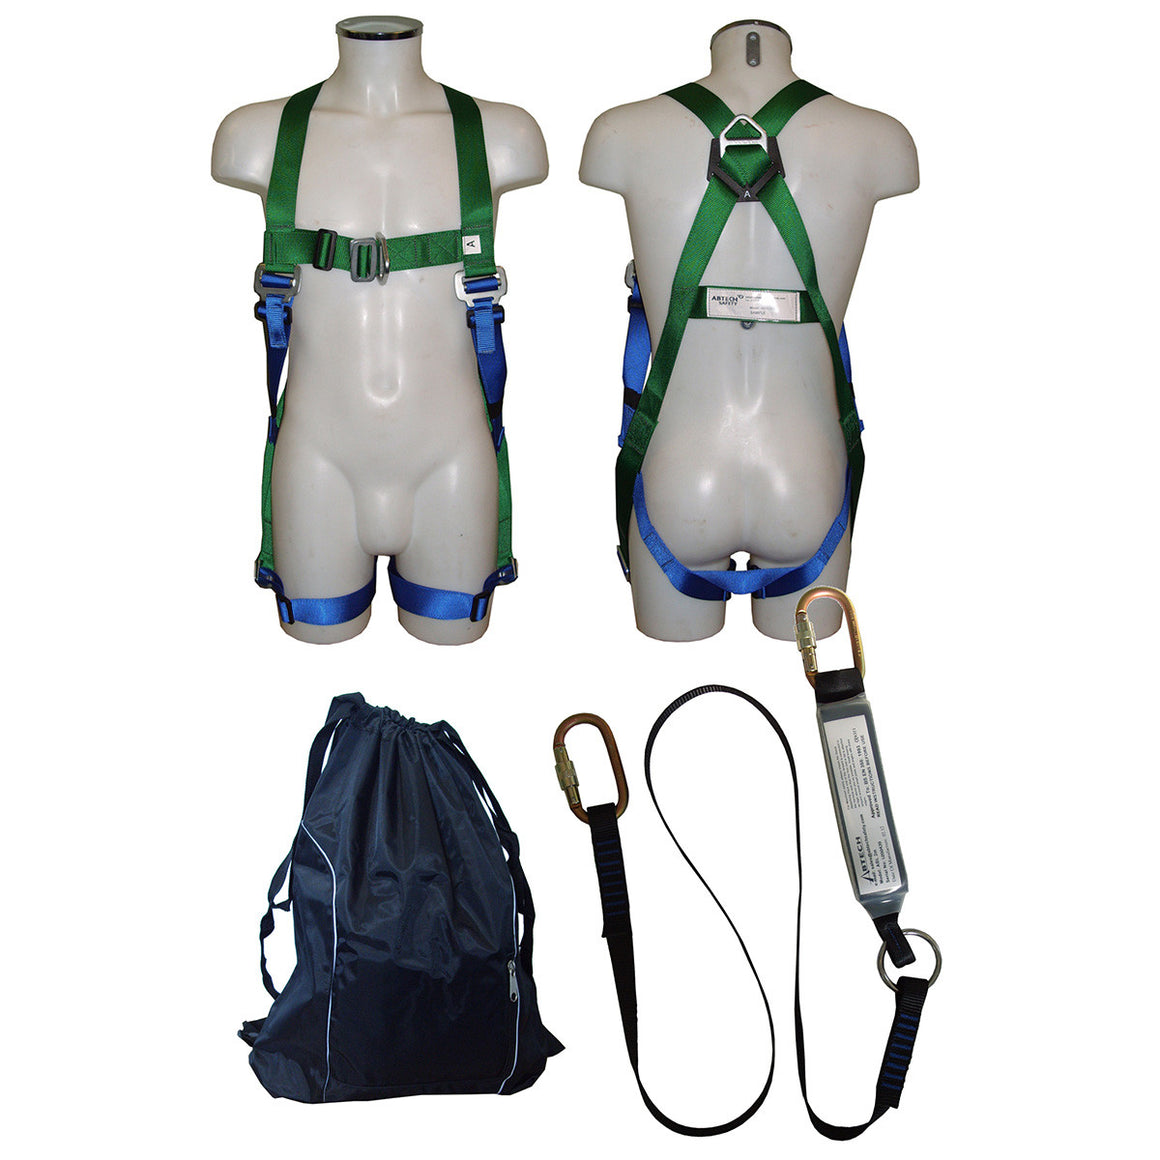 AB20AB - Working at Height Safety Harness Kit